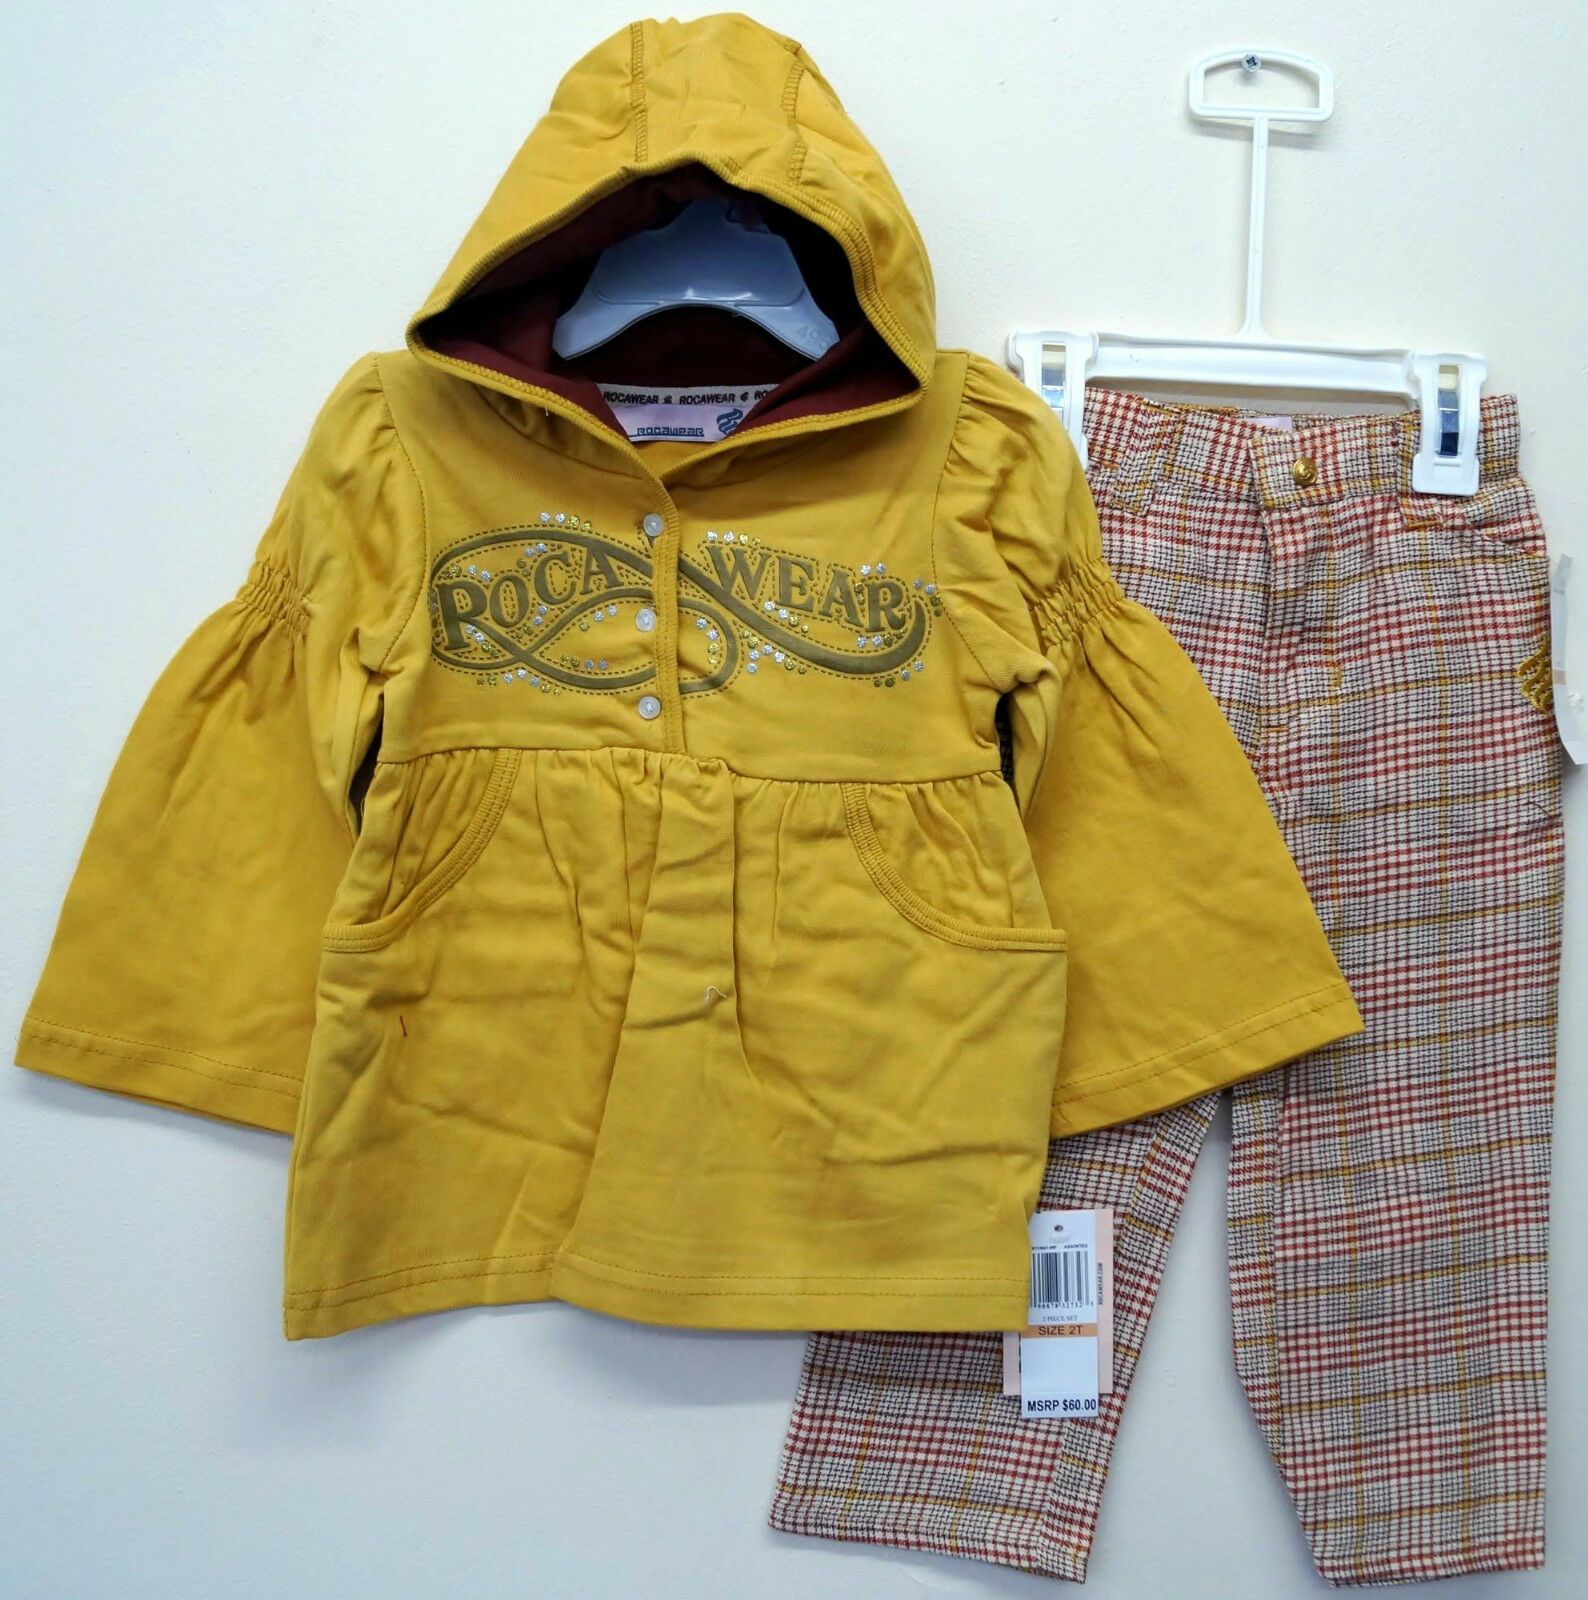 Girls Rocawear Gold Hooded Tunis Jacket Top & Tweed Checkered Trouser Set: 3T 4T